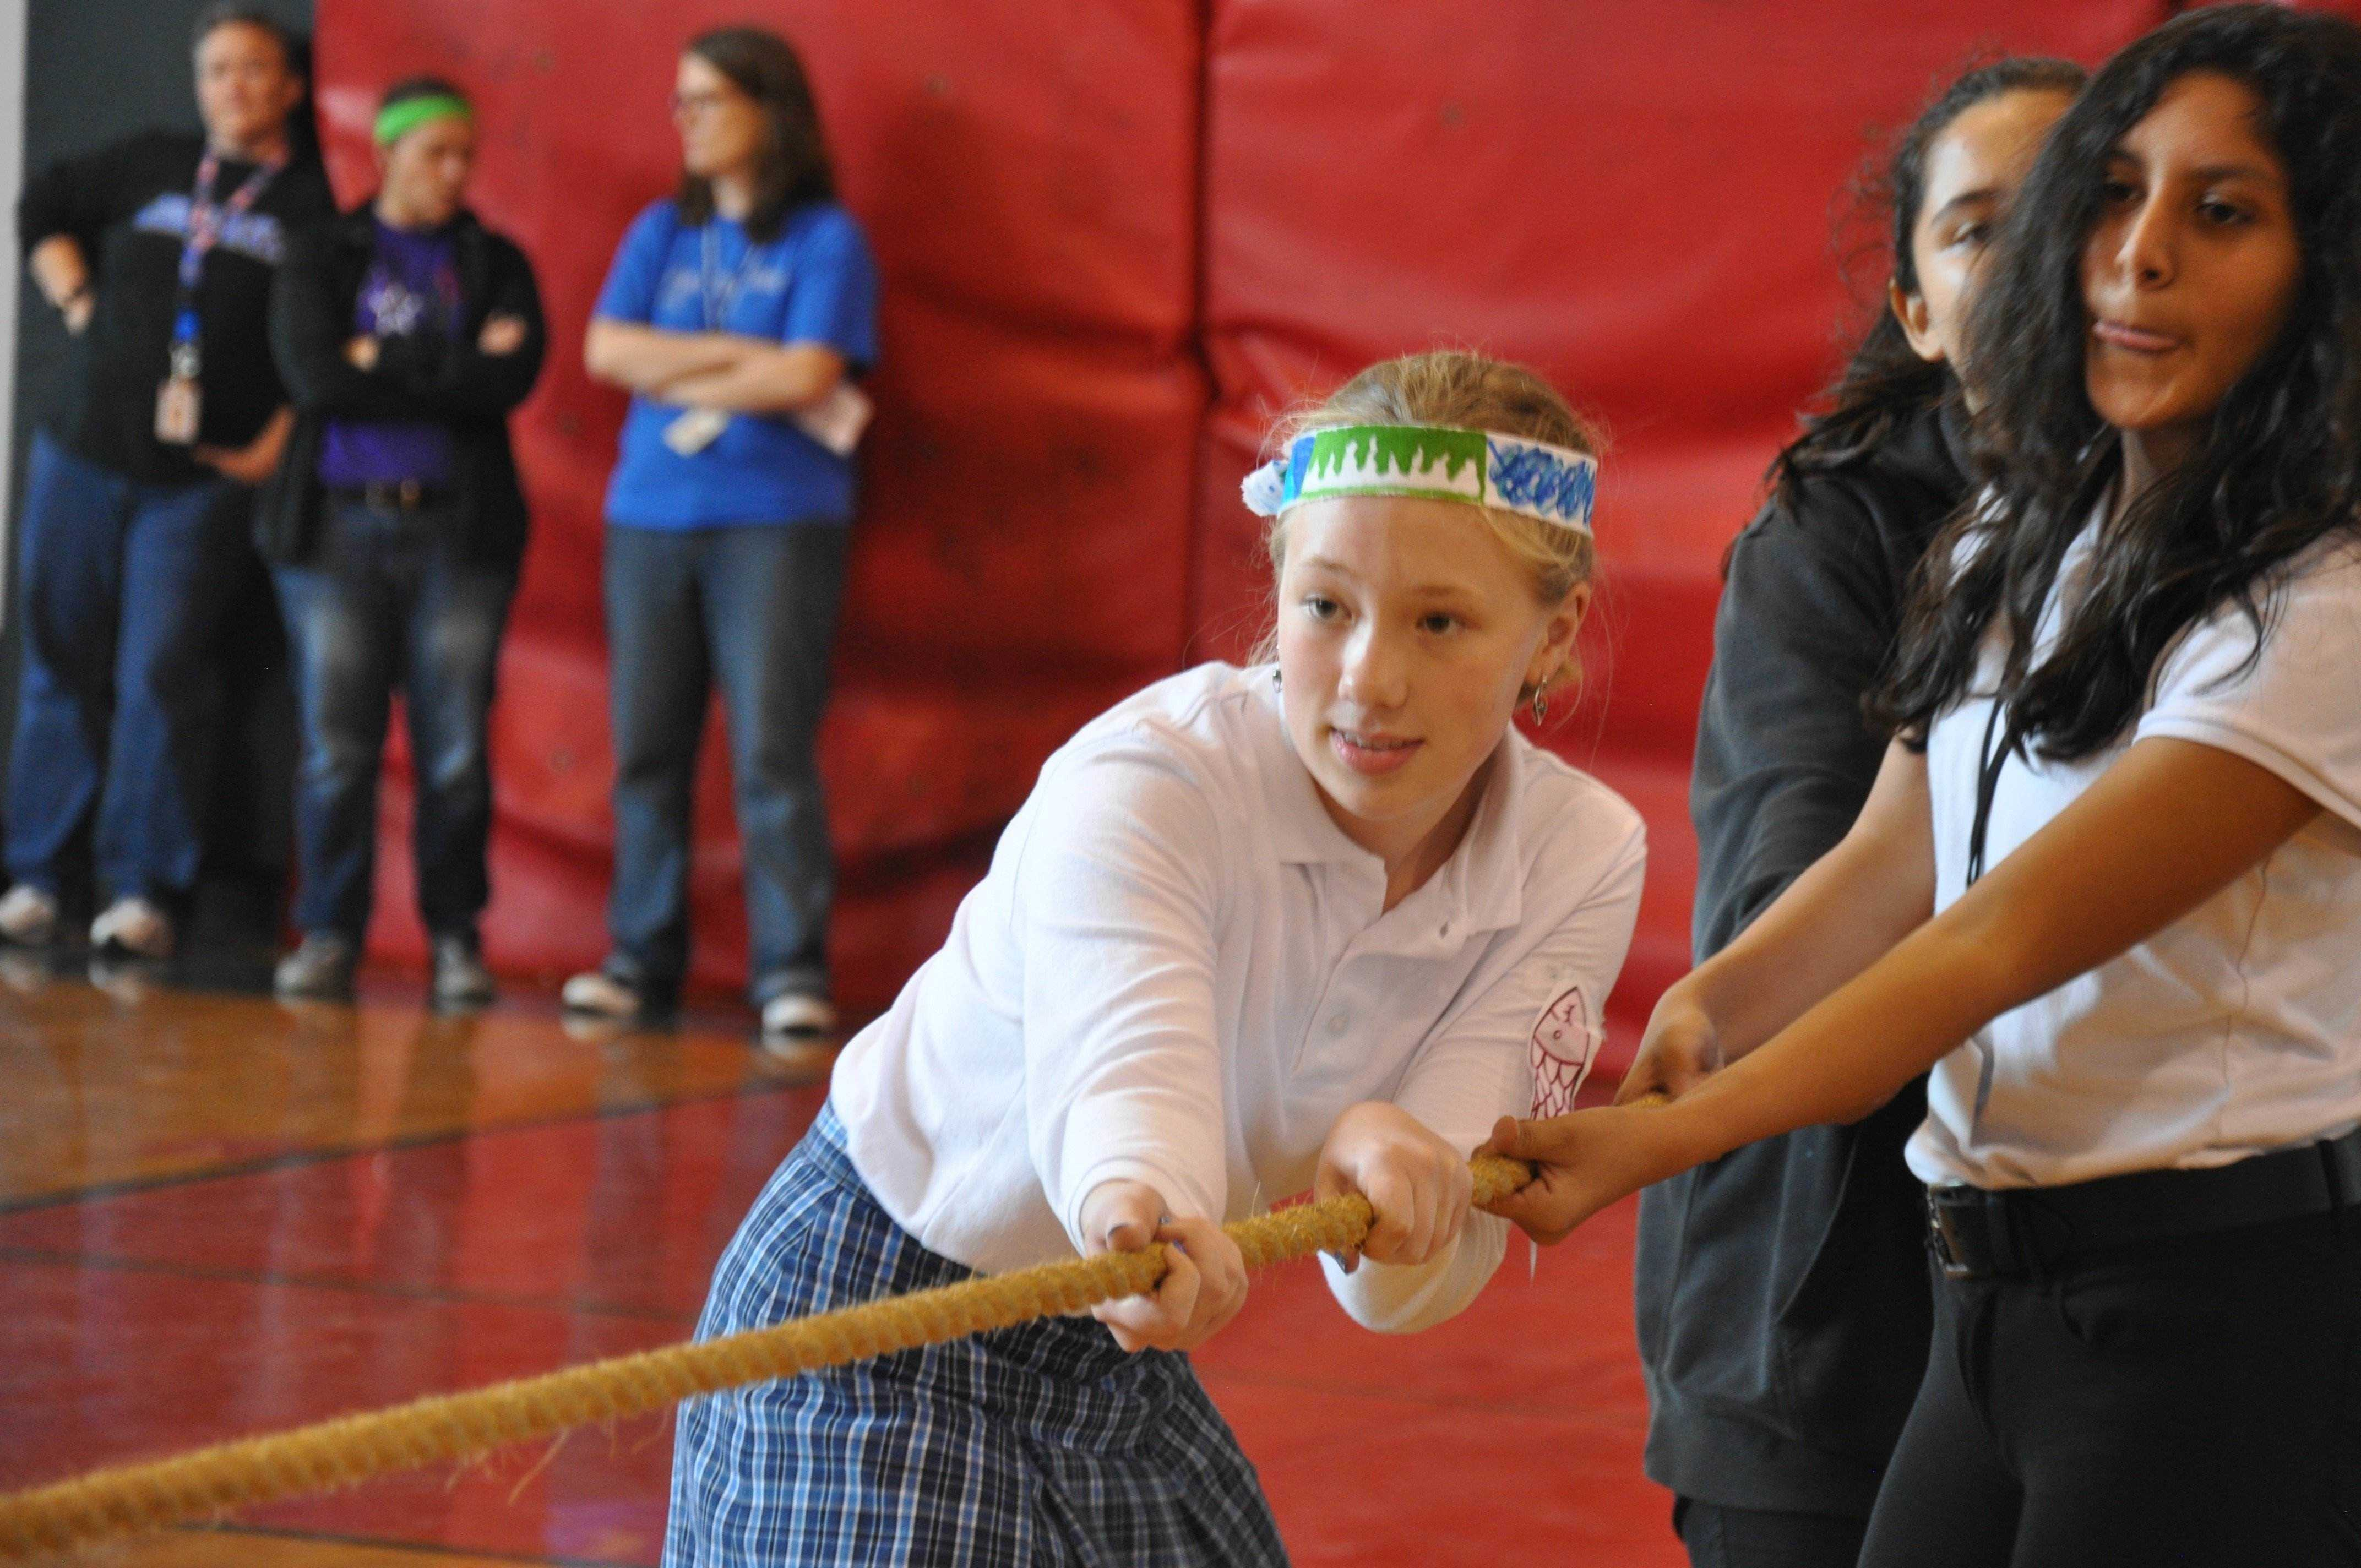 Aidan Trulove (8) pulls on the tug of war rope determining whether Pamela Mathai or Ella Miesner's advisory would win first place in Sisterlympics.